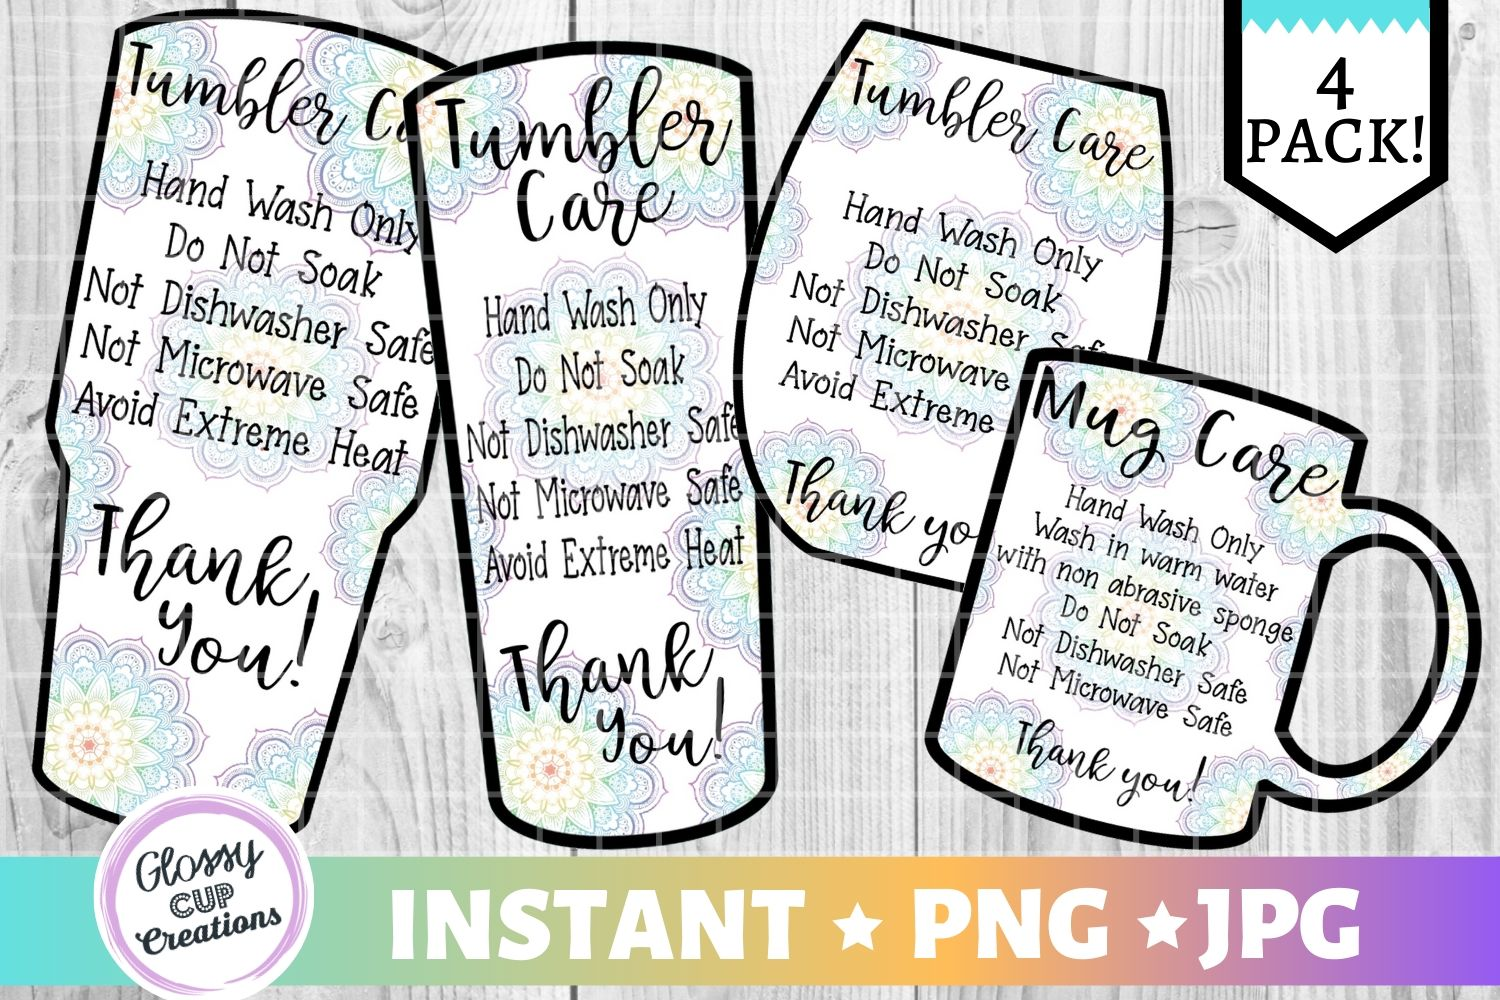 Download Free Tumbler Care Cards Mandala Graphic By Suzannecornejo for Cricut Explore, Silhouette and other cutting machines.